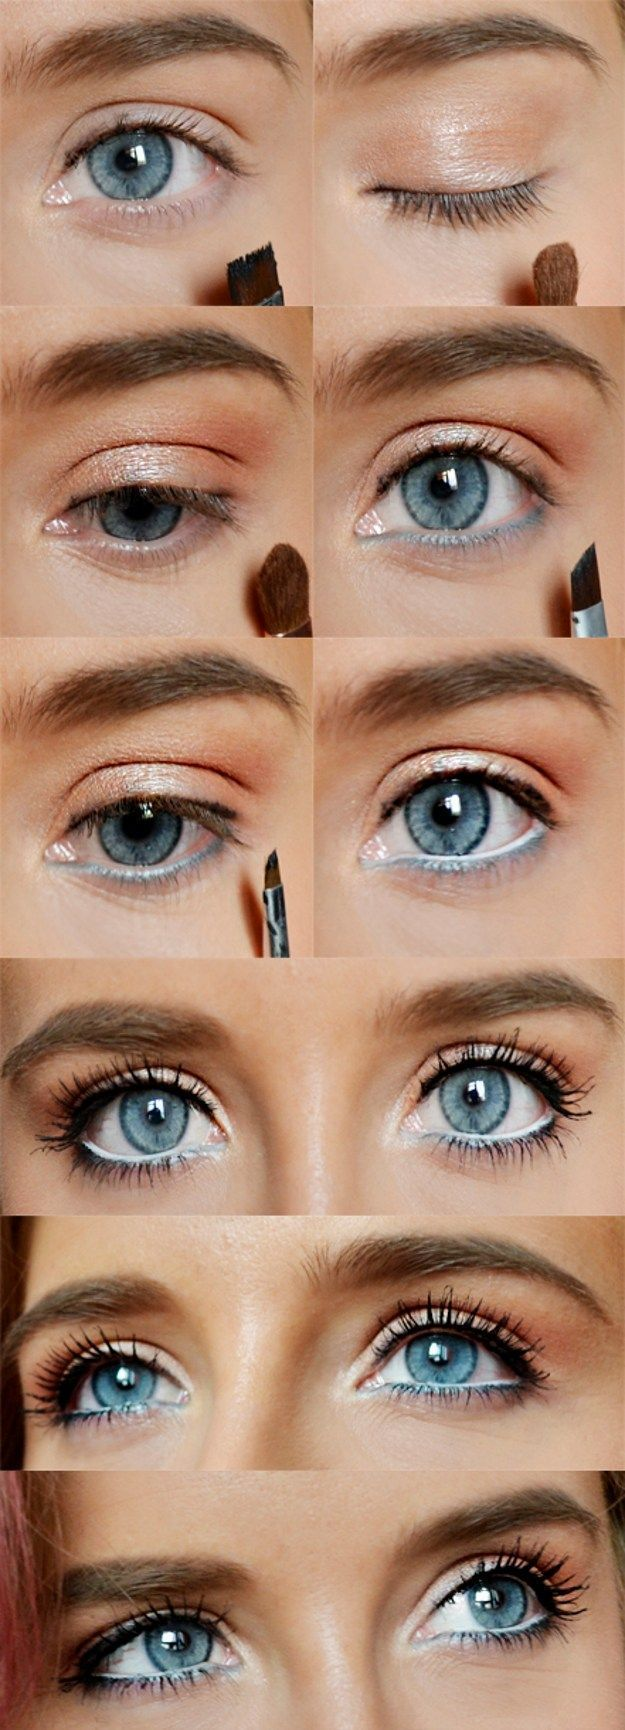 How to Do Natural Spring Makeup | Easy DIY Look by Makeup Tutorials at www.makeu...